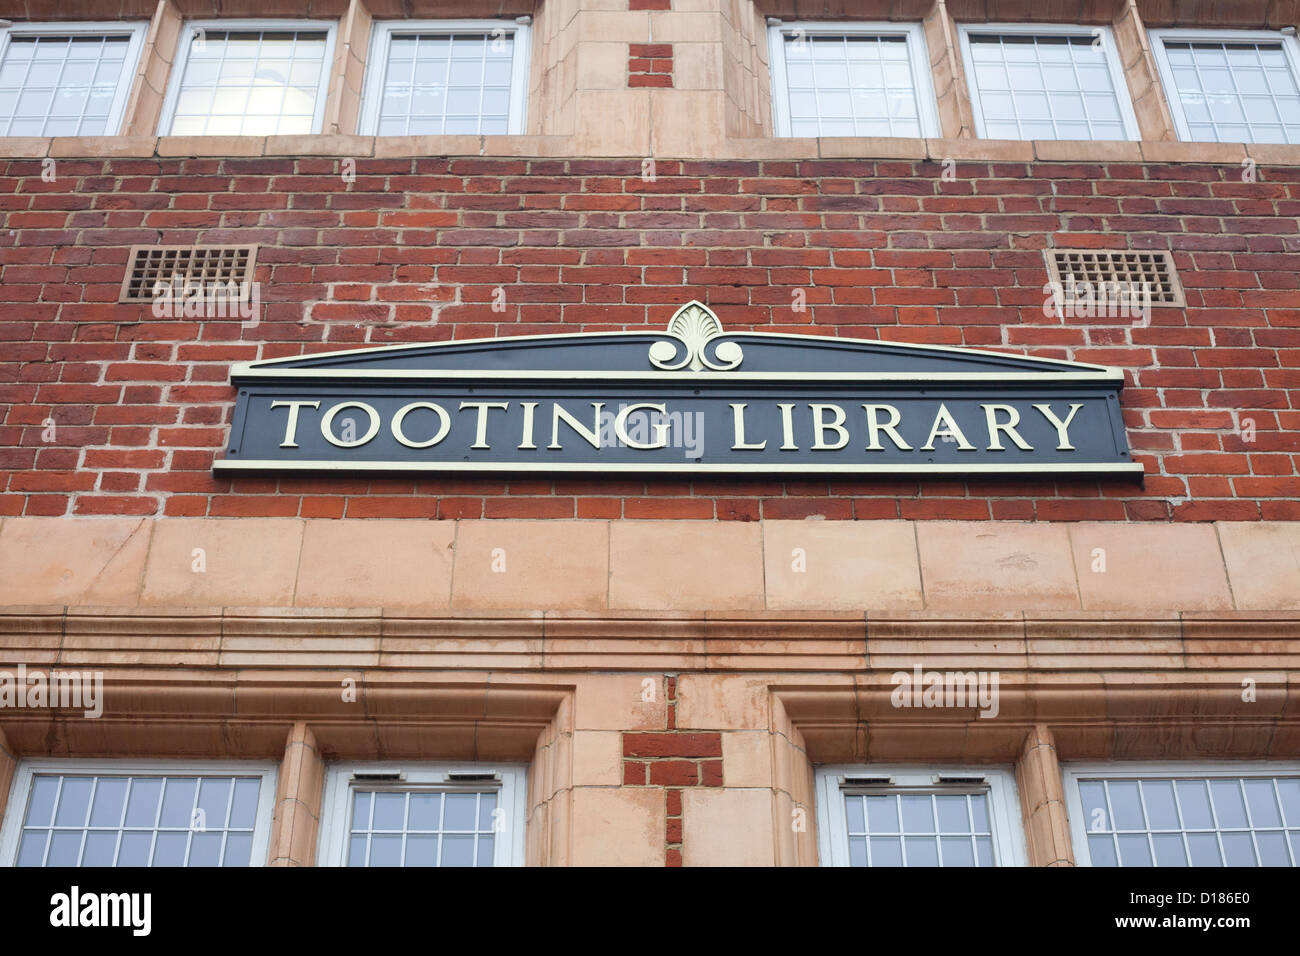 Tooting Library sign, in South West London, UK - Stock Image